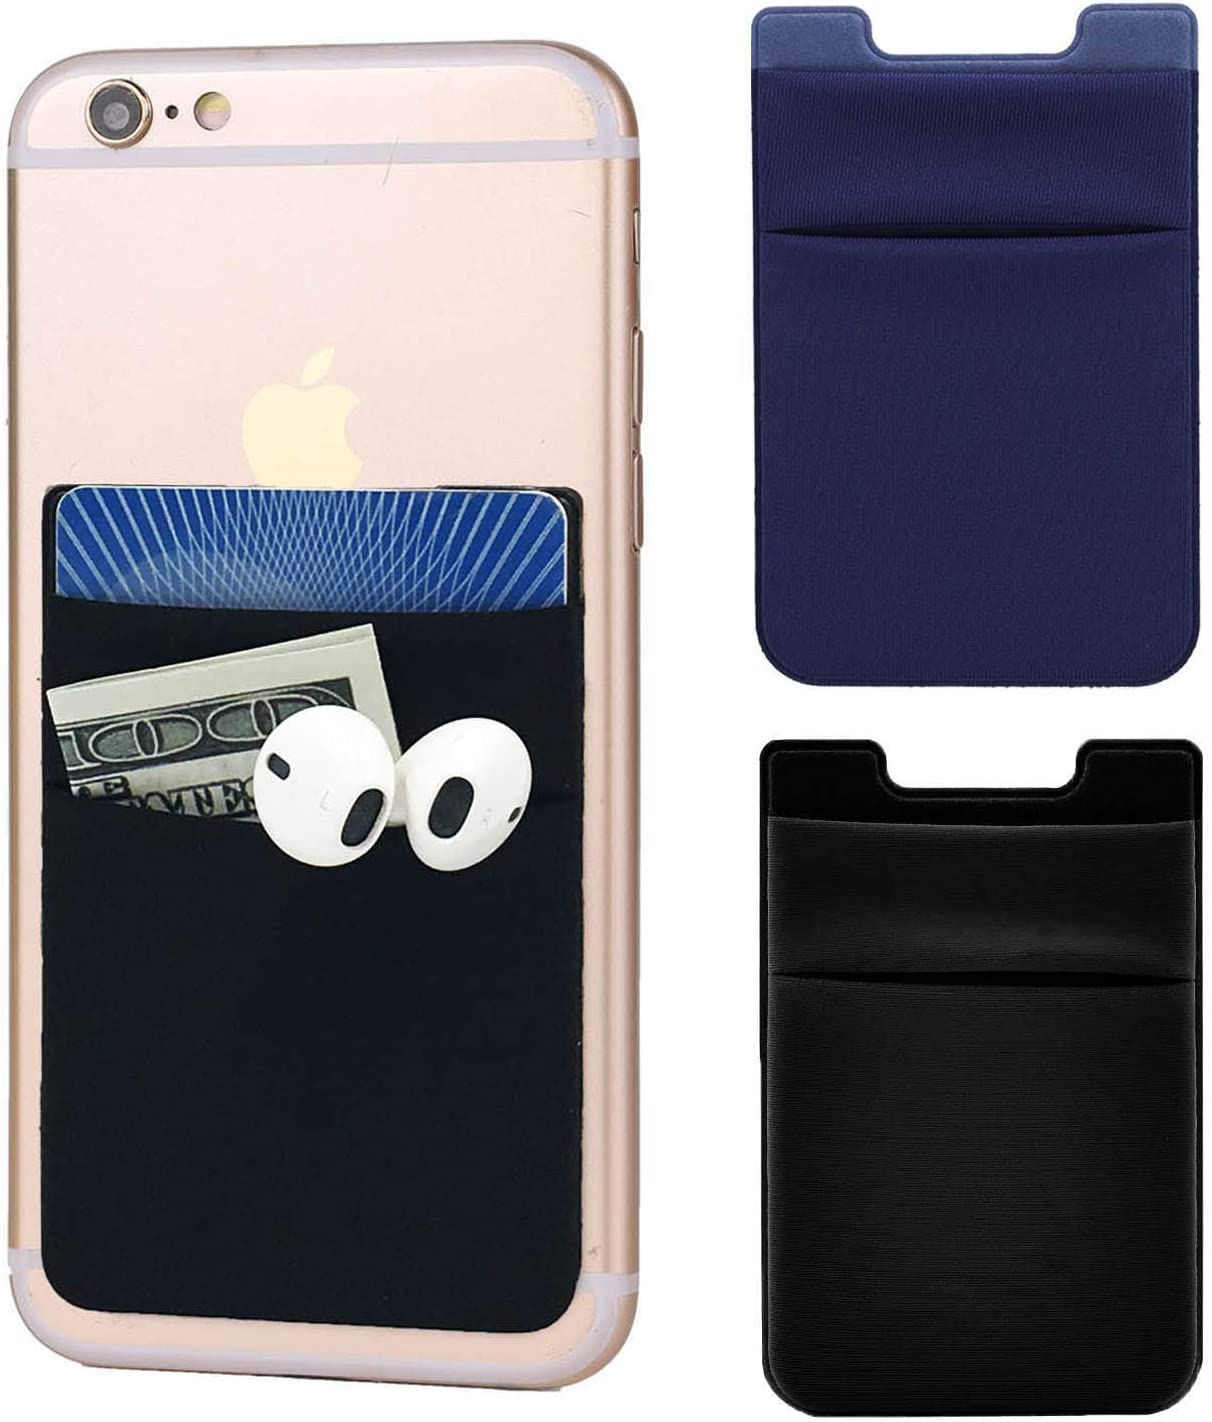 2Pack Adhesive Phone Pocket,Cell Phone Stick On Card Wallet,Credit Cards/ID Card Holder(Double Secure) with 3M Sticker for Back of iPhone,Android and All Smartphones-Double Pocket(1Black&1Navy Blue)